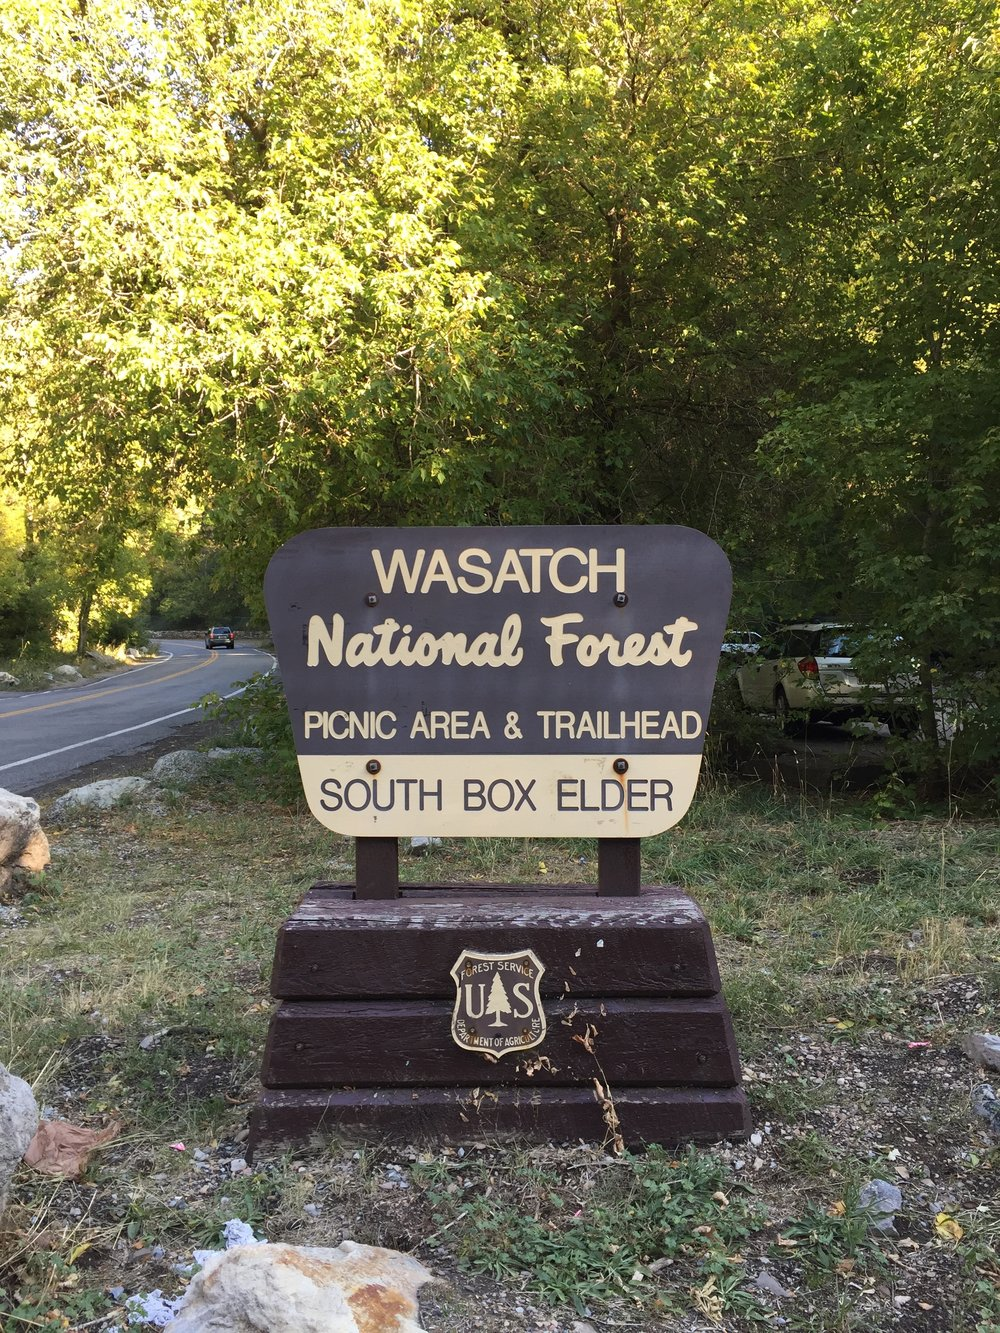 TRAILHEAD MARKER. Parking lot and restrooms provided.